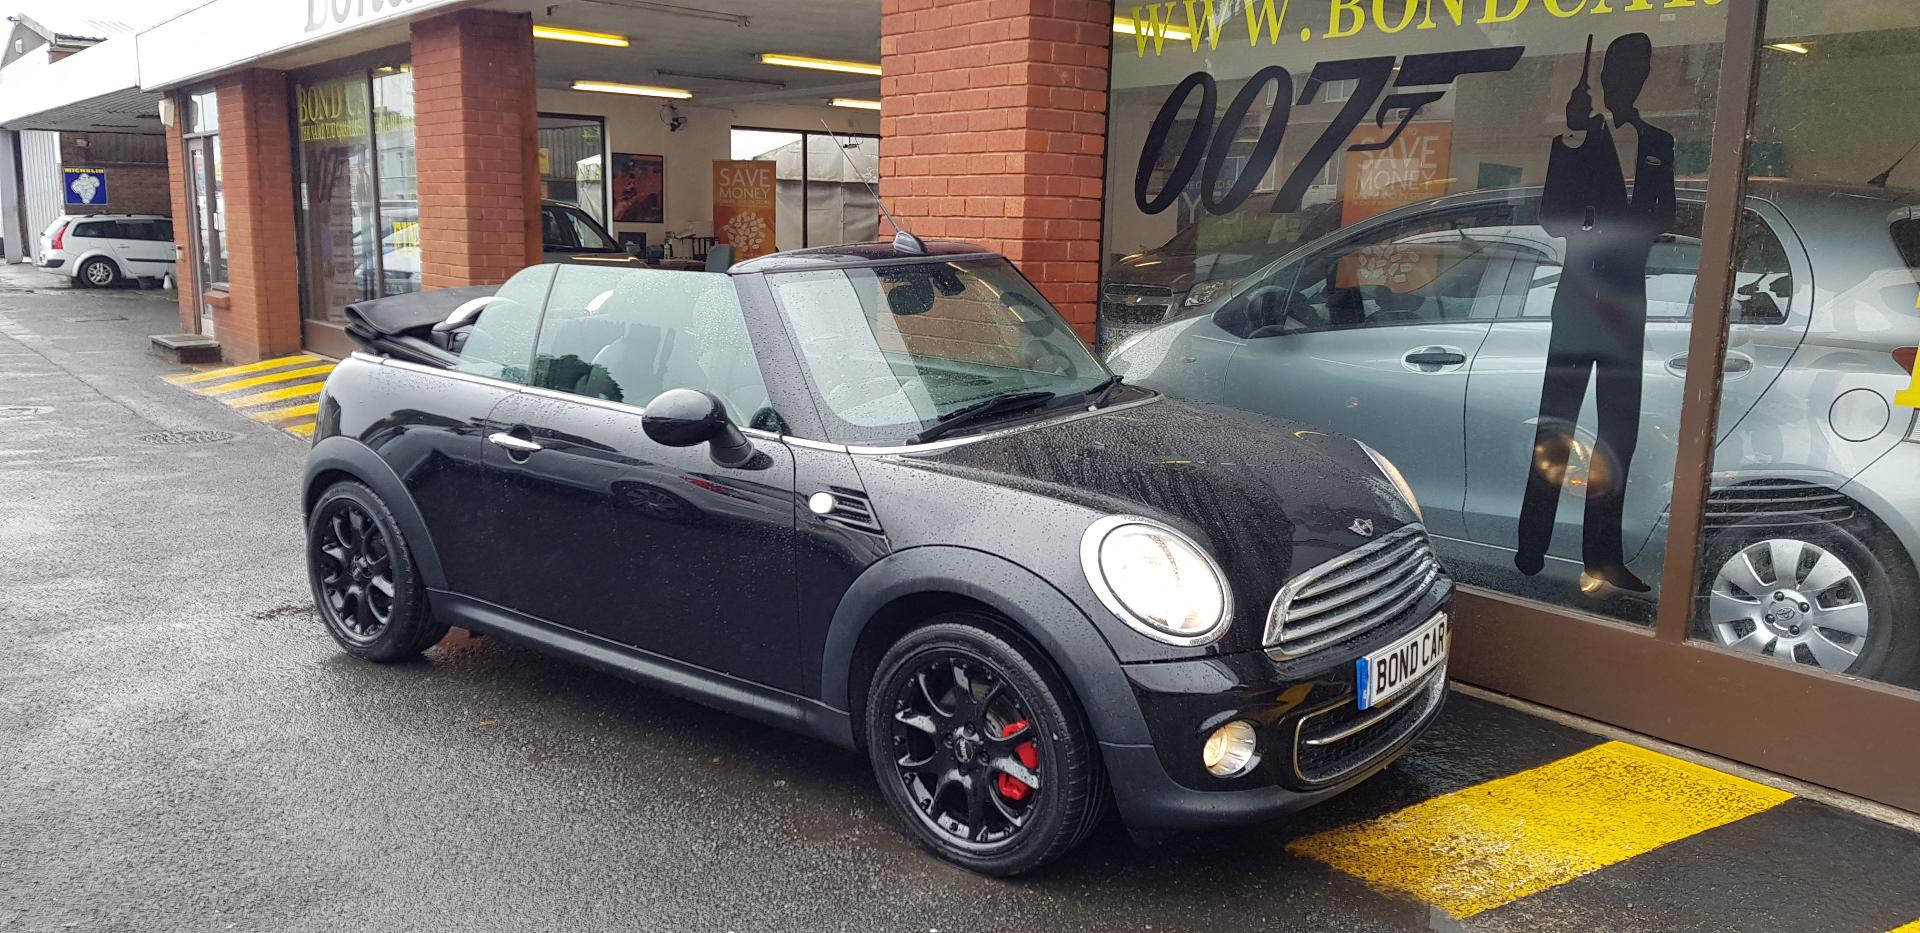 2011 (61) MINI Convertible 1.6 Cooper D 70 mpg £20 tax Convertible For Sale In Swansea, Glamorgan